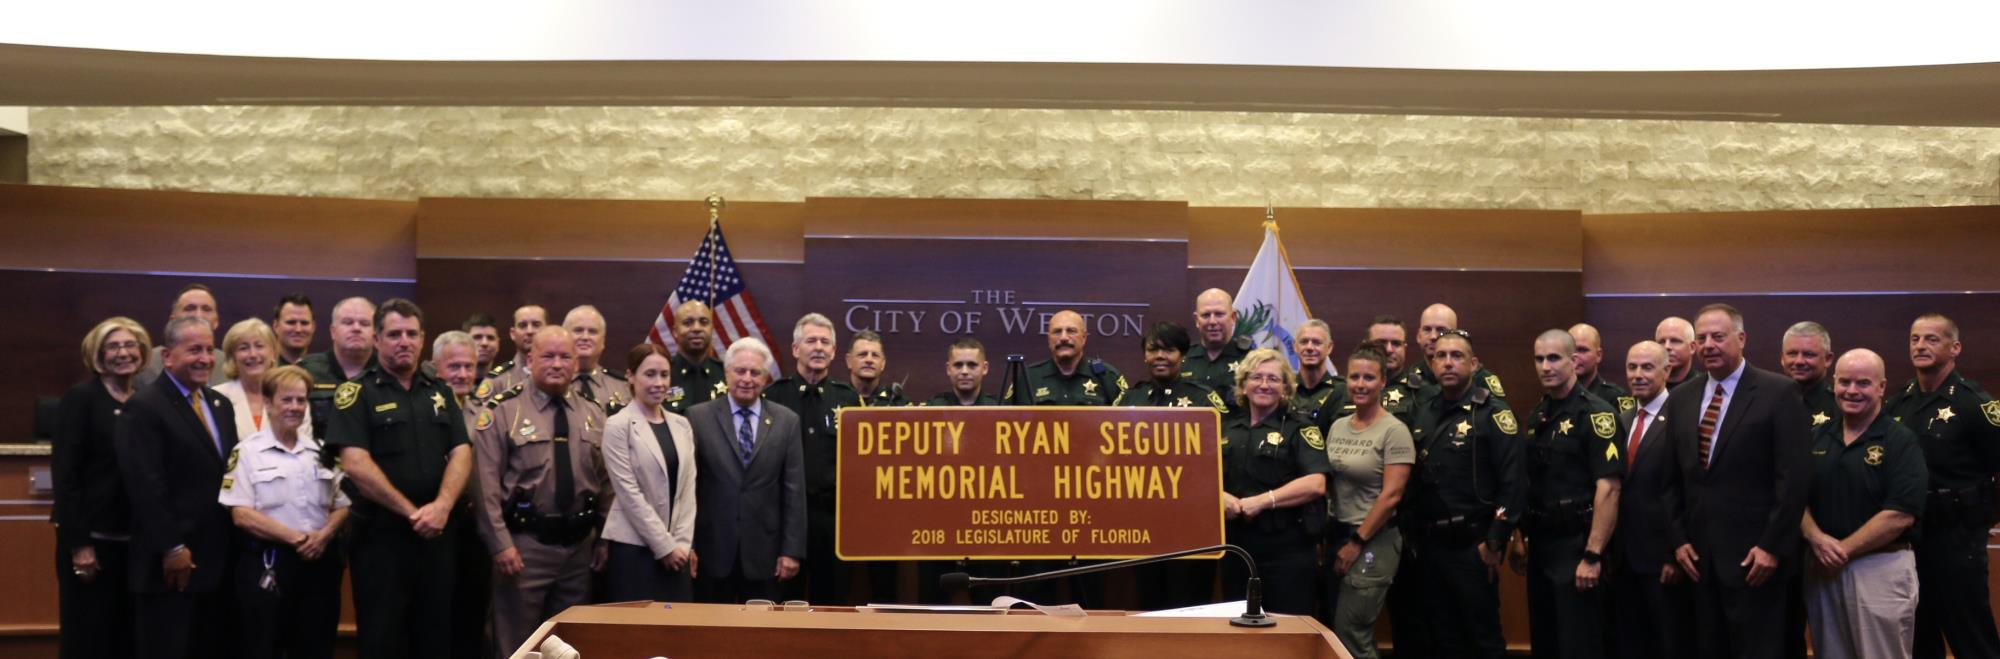 Large group of people in front of highway sign honoring Deputy Ryan Seguin